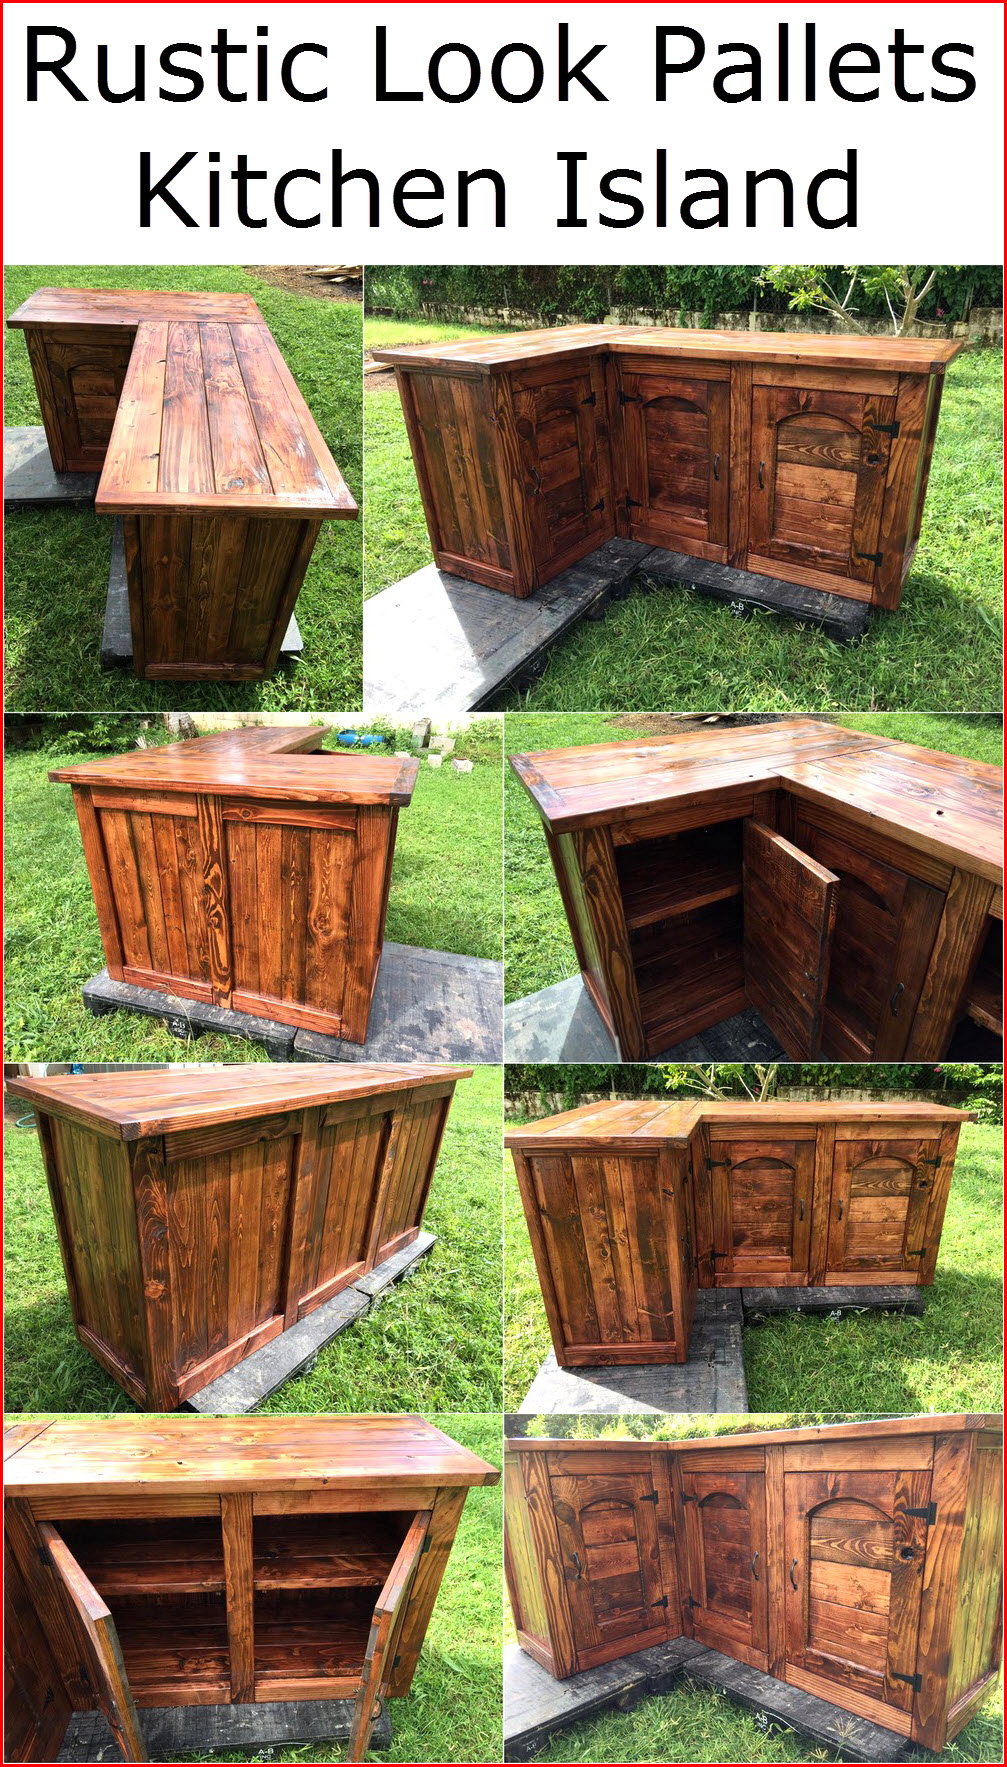 rustic-look-pallets-kitchen-island